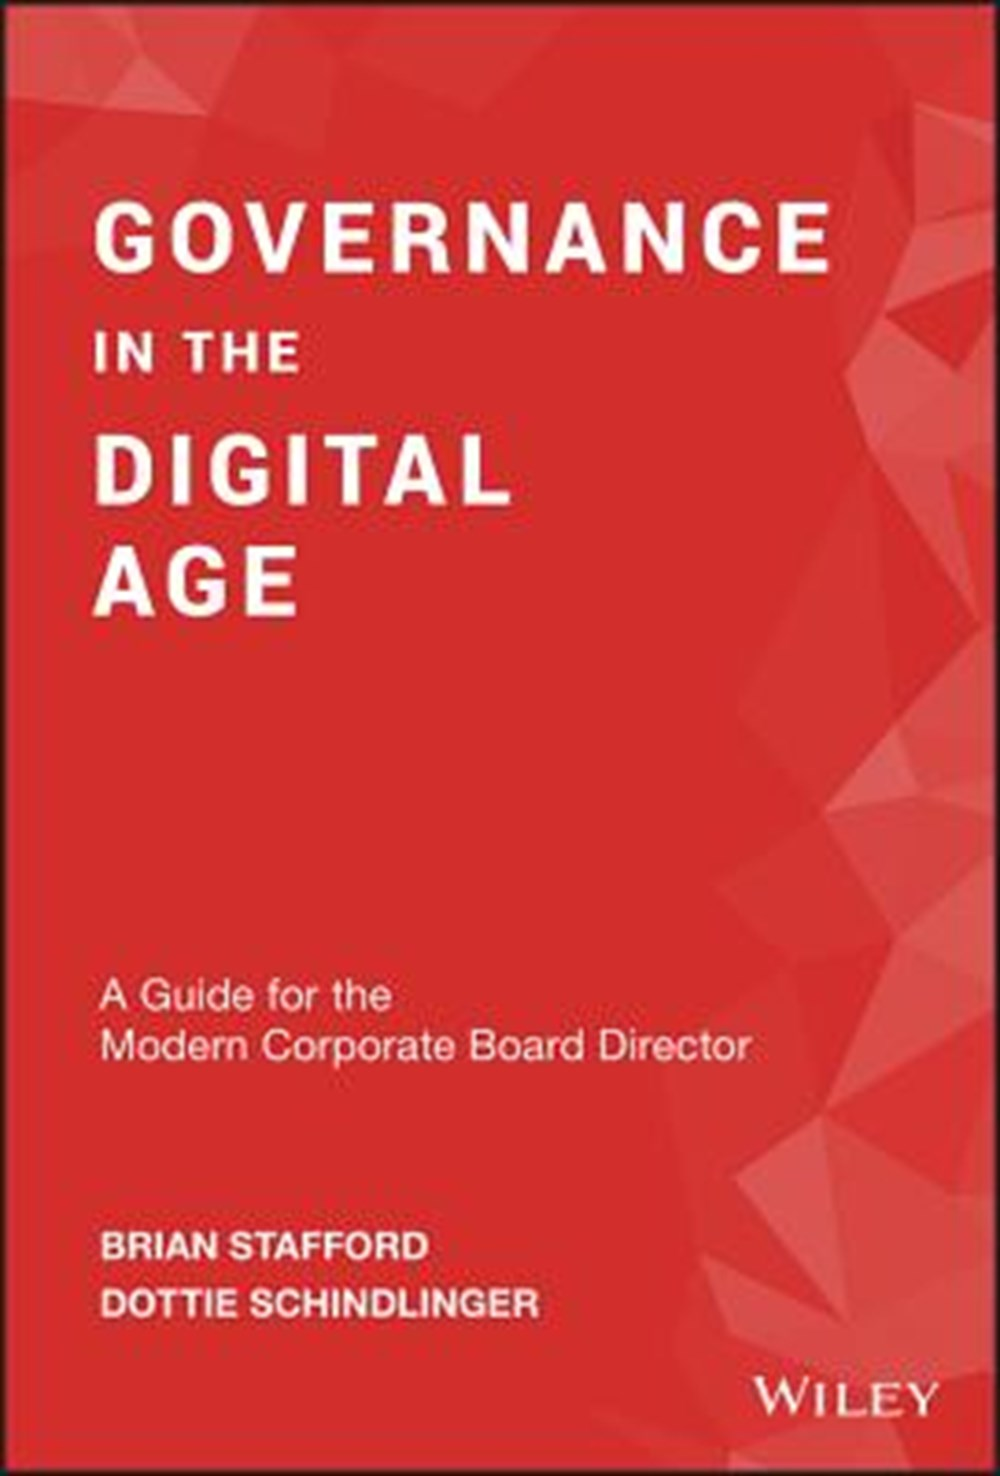 Governance in the Digital Age A Guide for the Modern Corporate Board Director